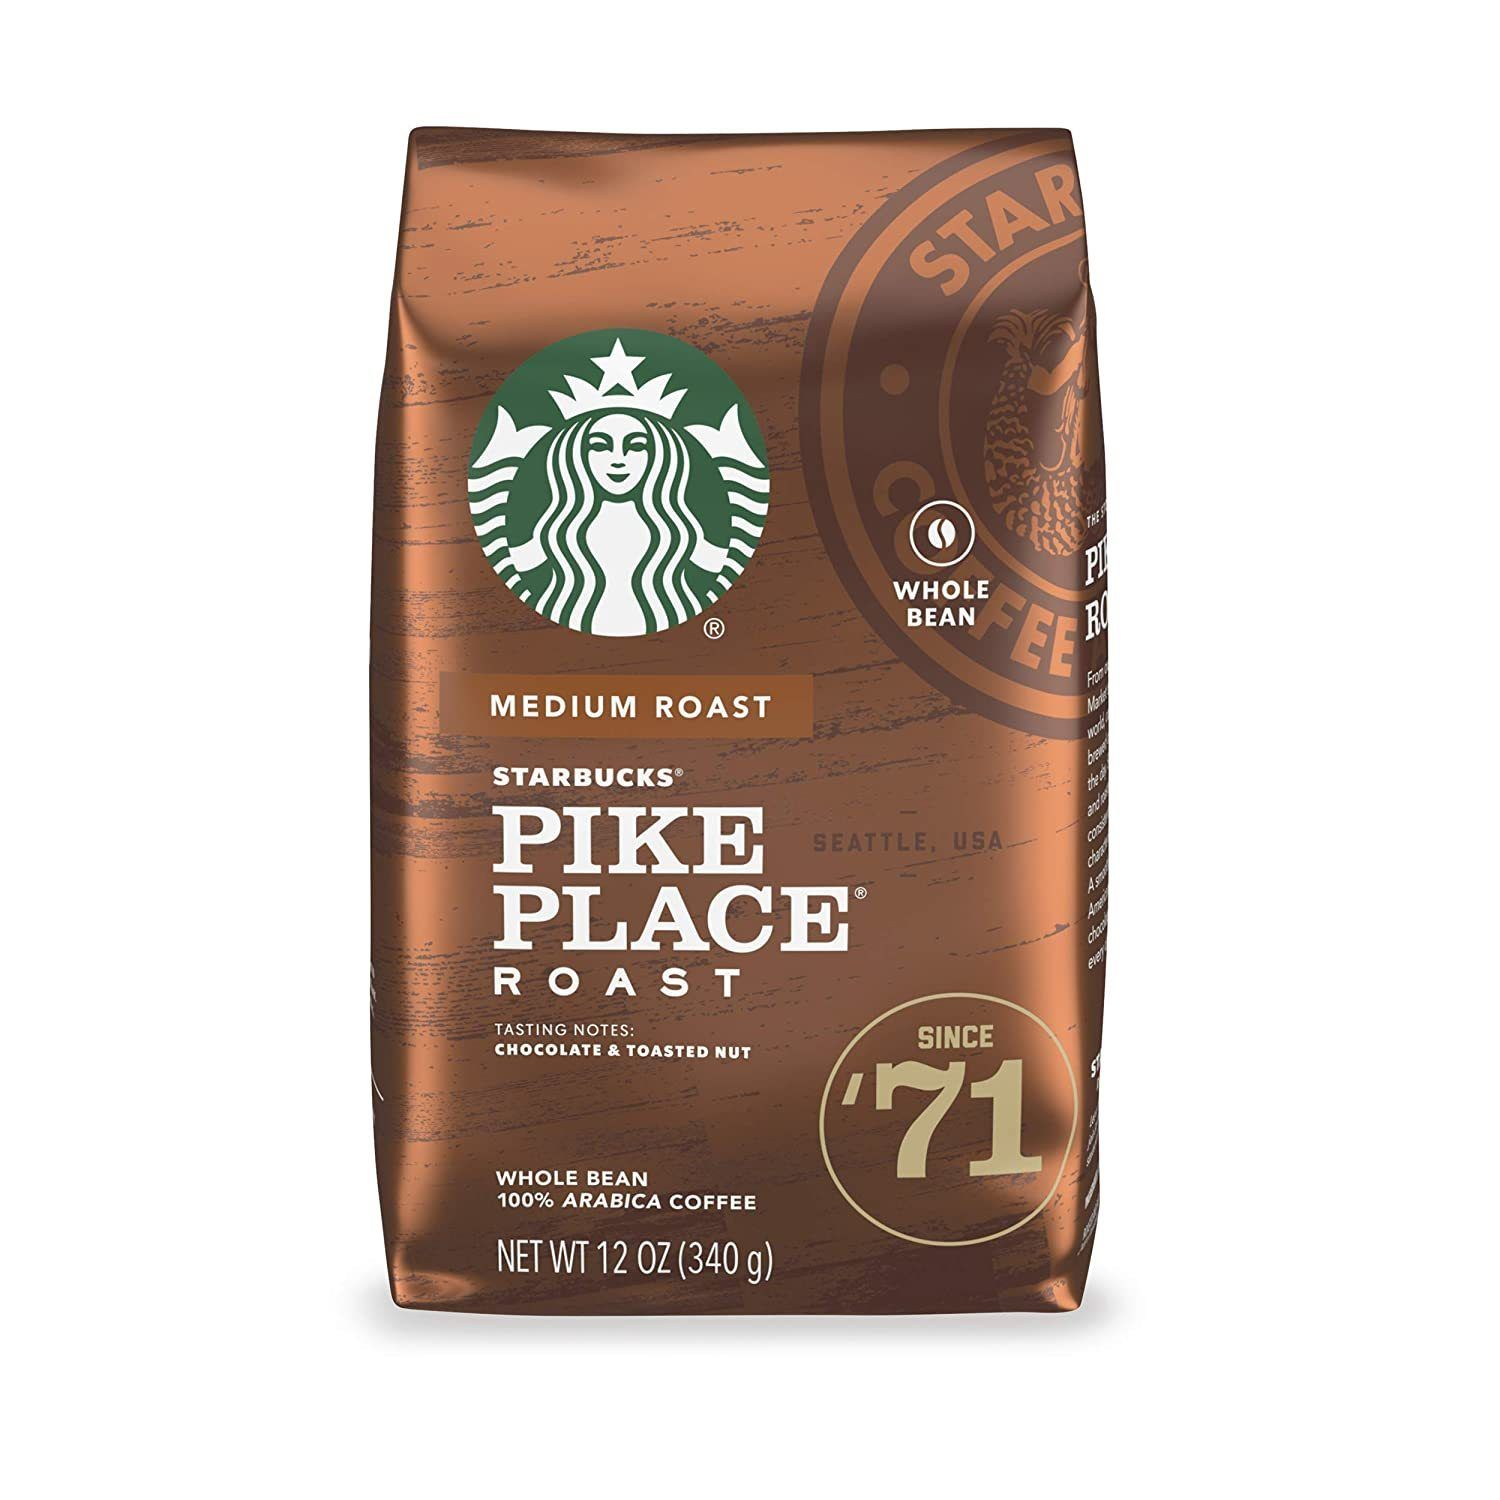 Starbucks Medium Pike Place Roast Whole Bean Coffee